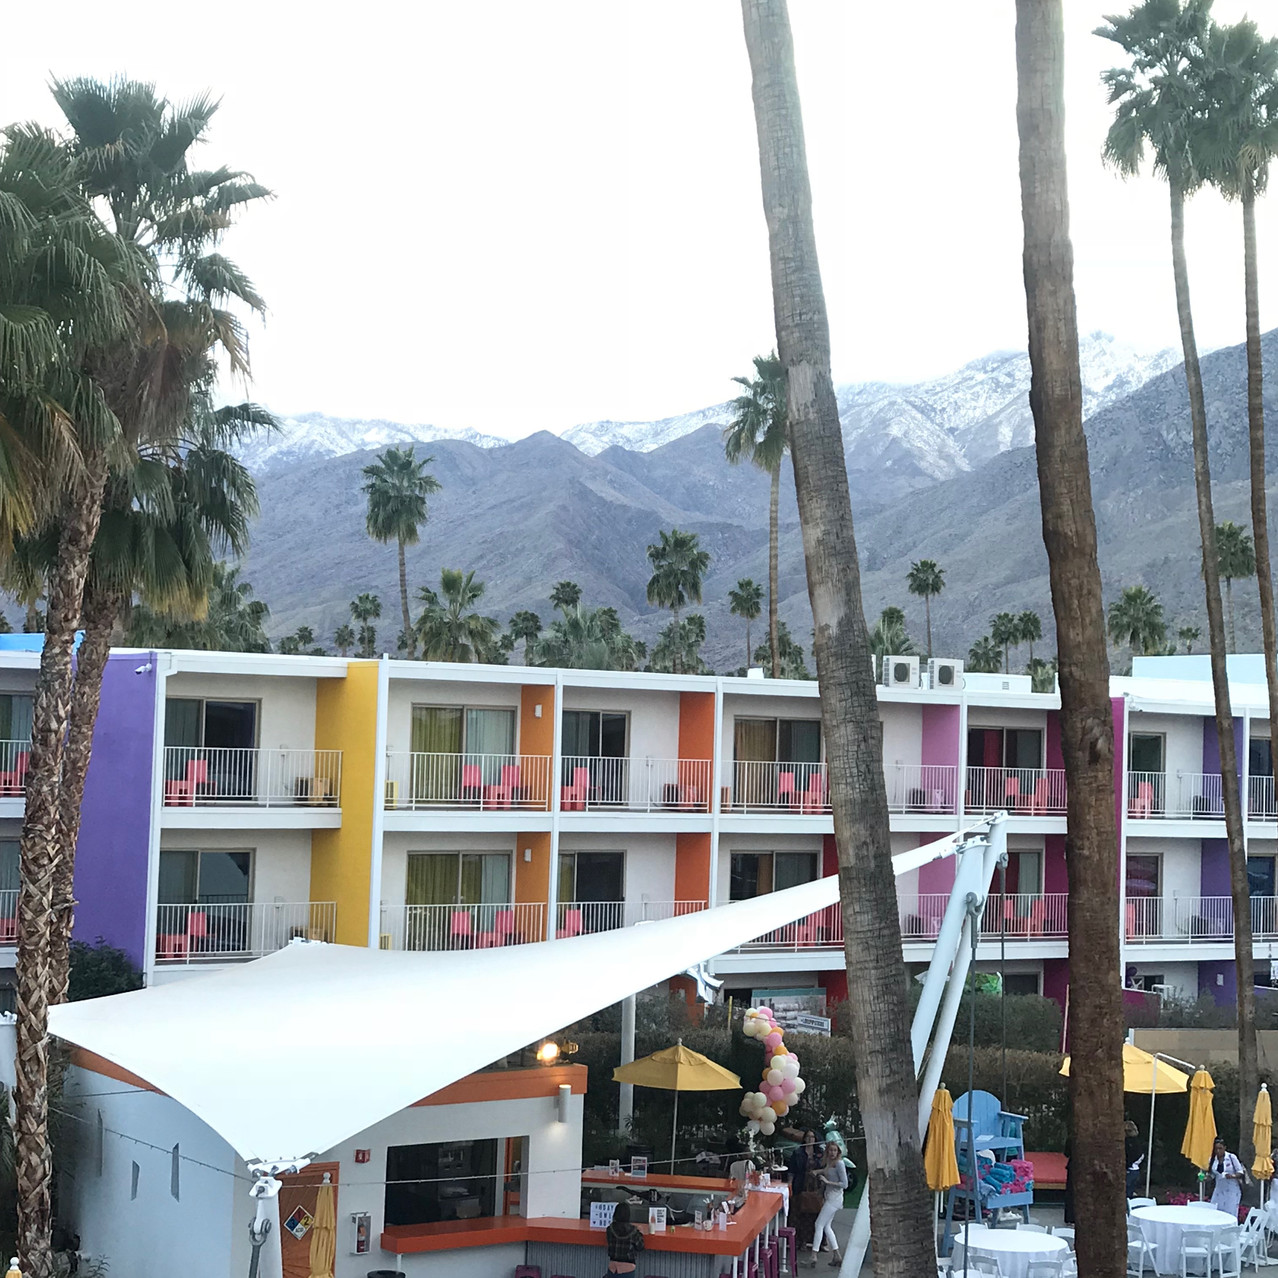 My view outside my hotel room!